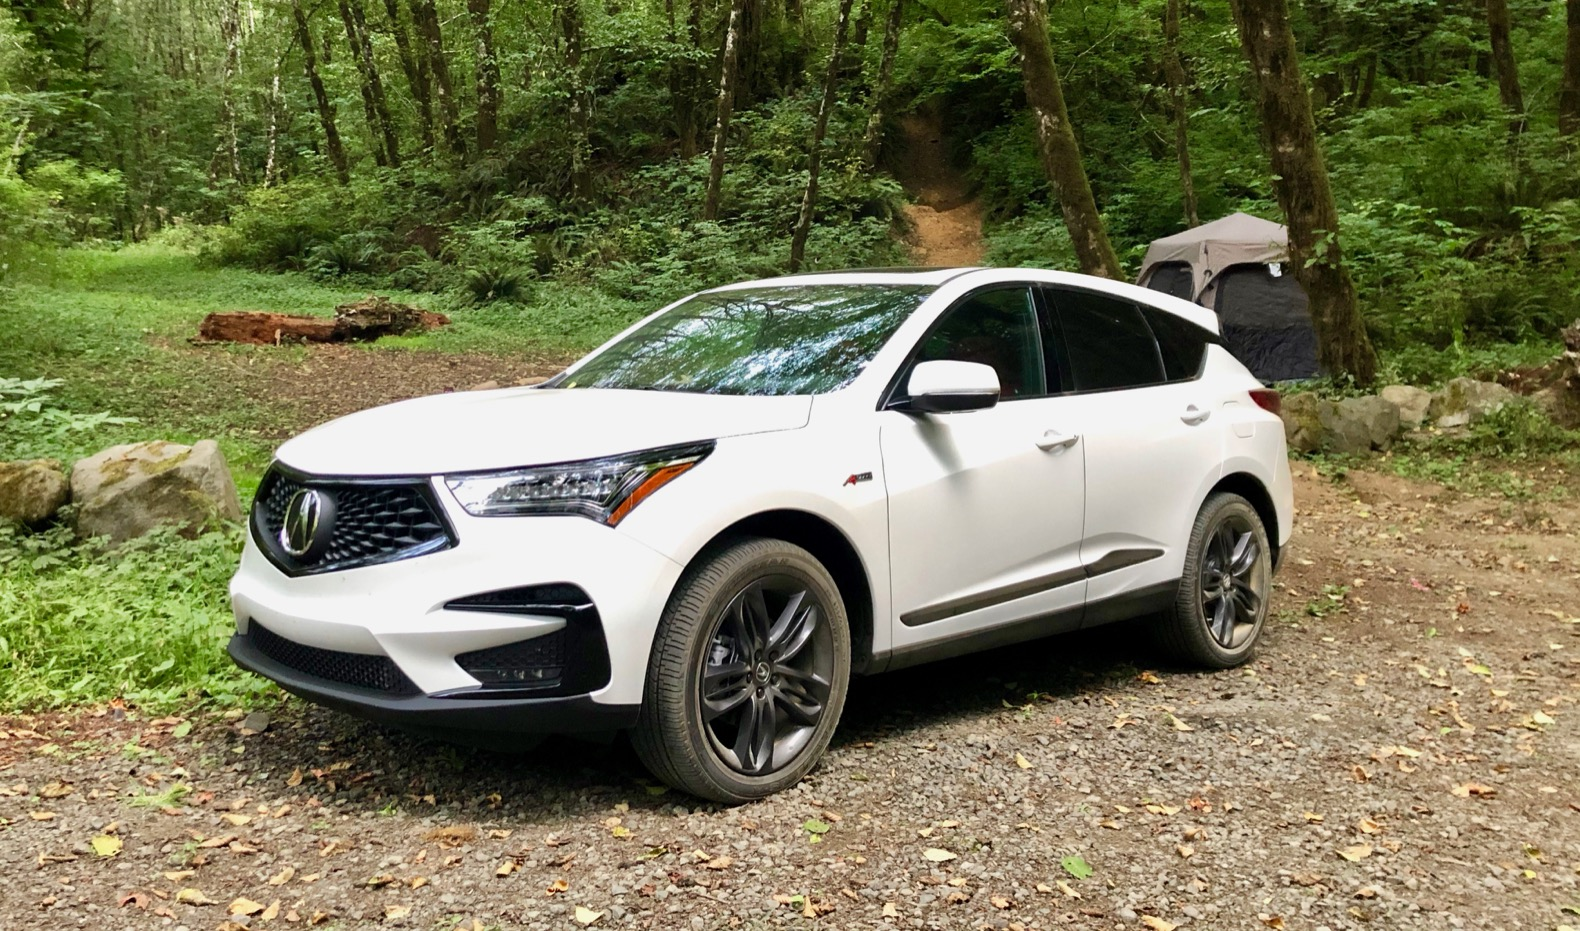 2020 Rdx Review.2020 Acura Rdx Review Versatile Value The Torque Report